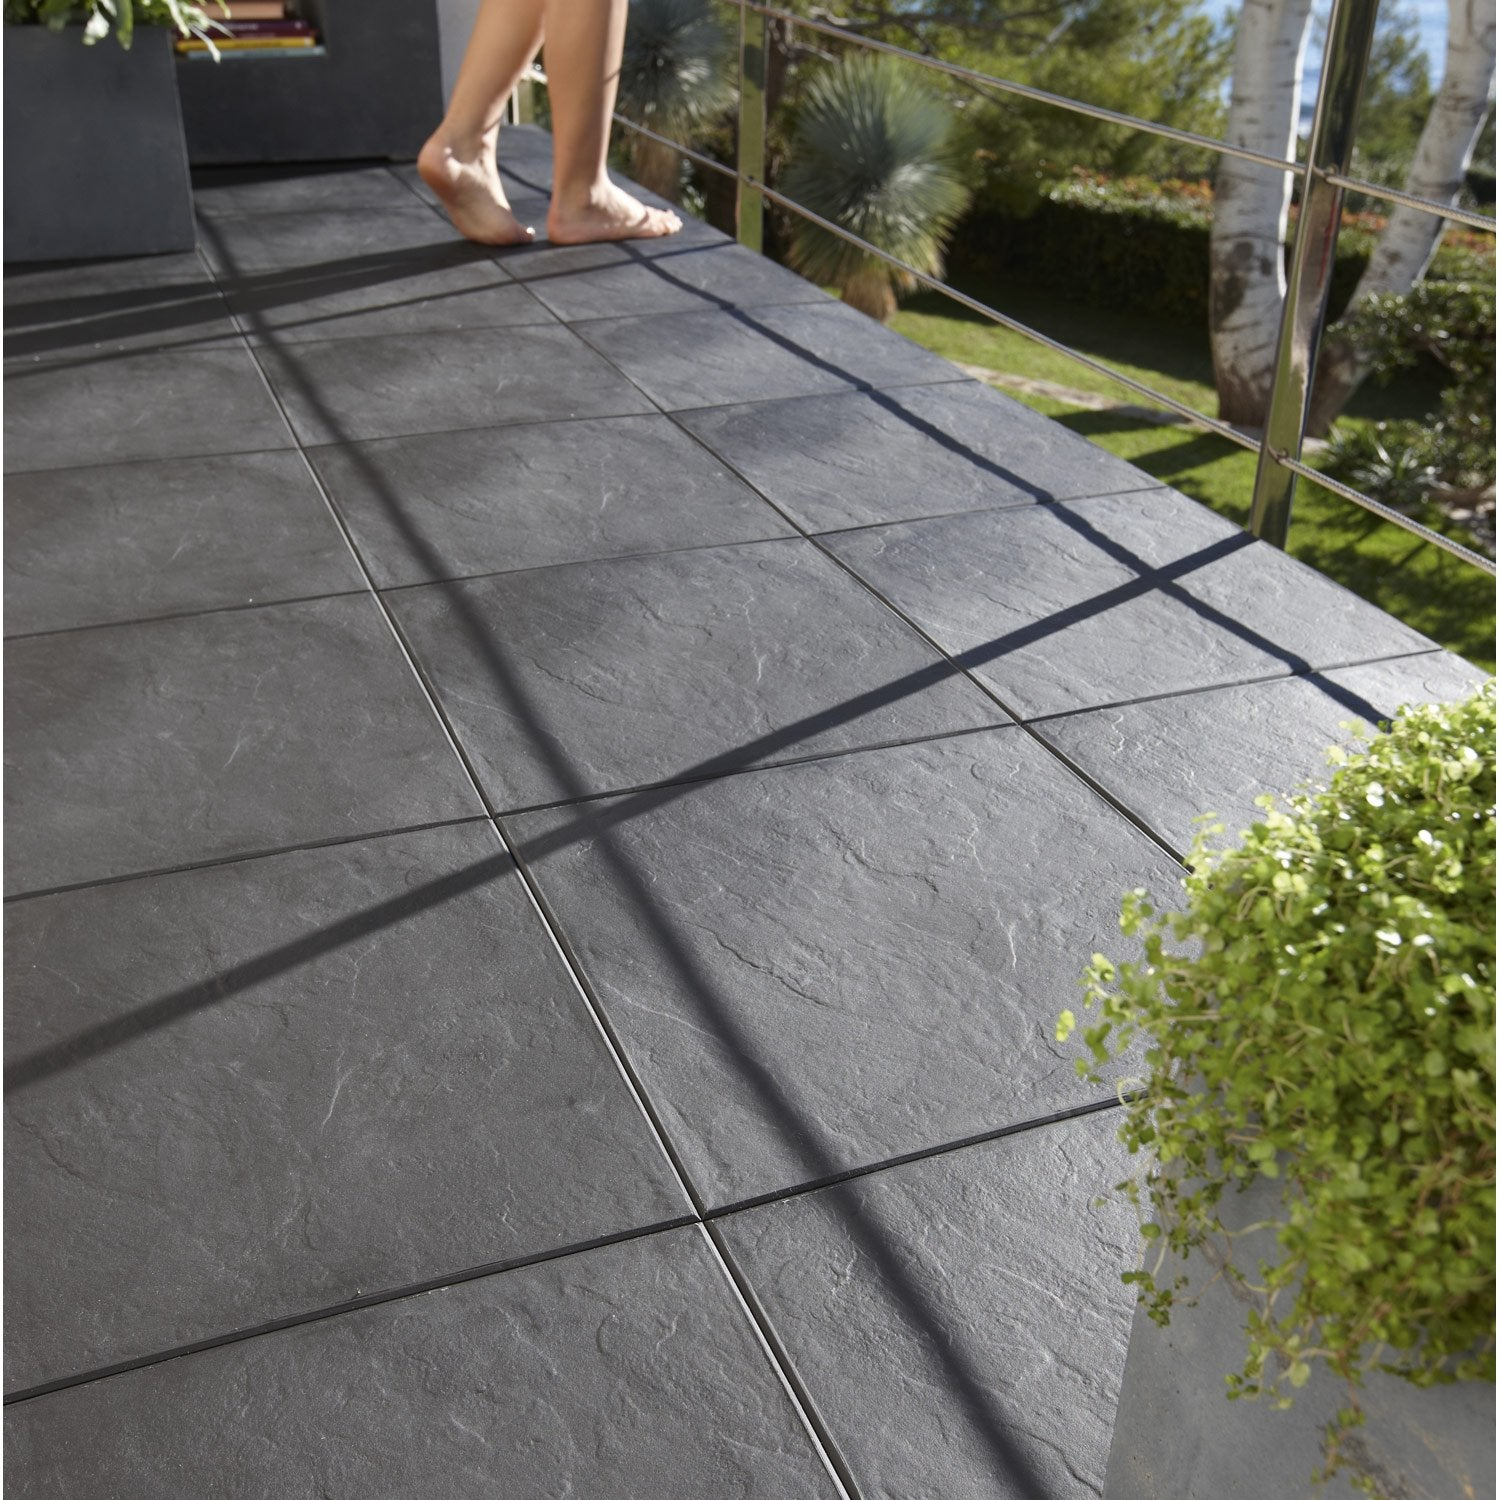 Dalle clipsable polypropyl ne aspect ardoise x - Dalle terrasse clipsable ...